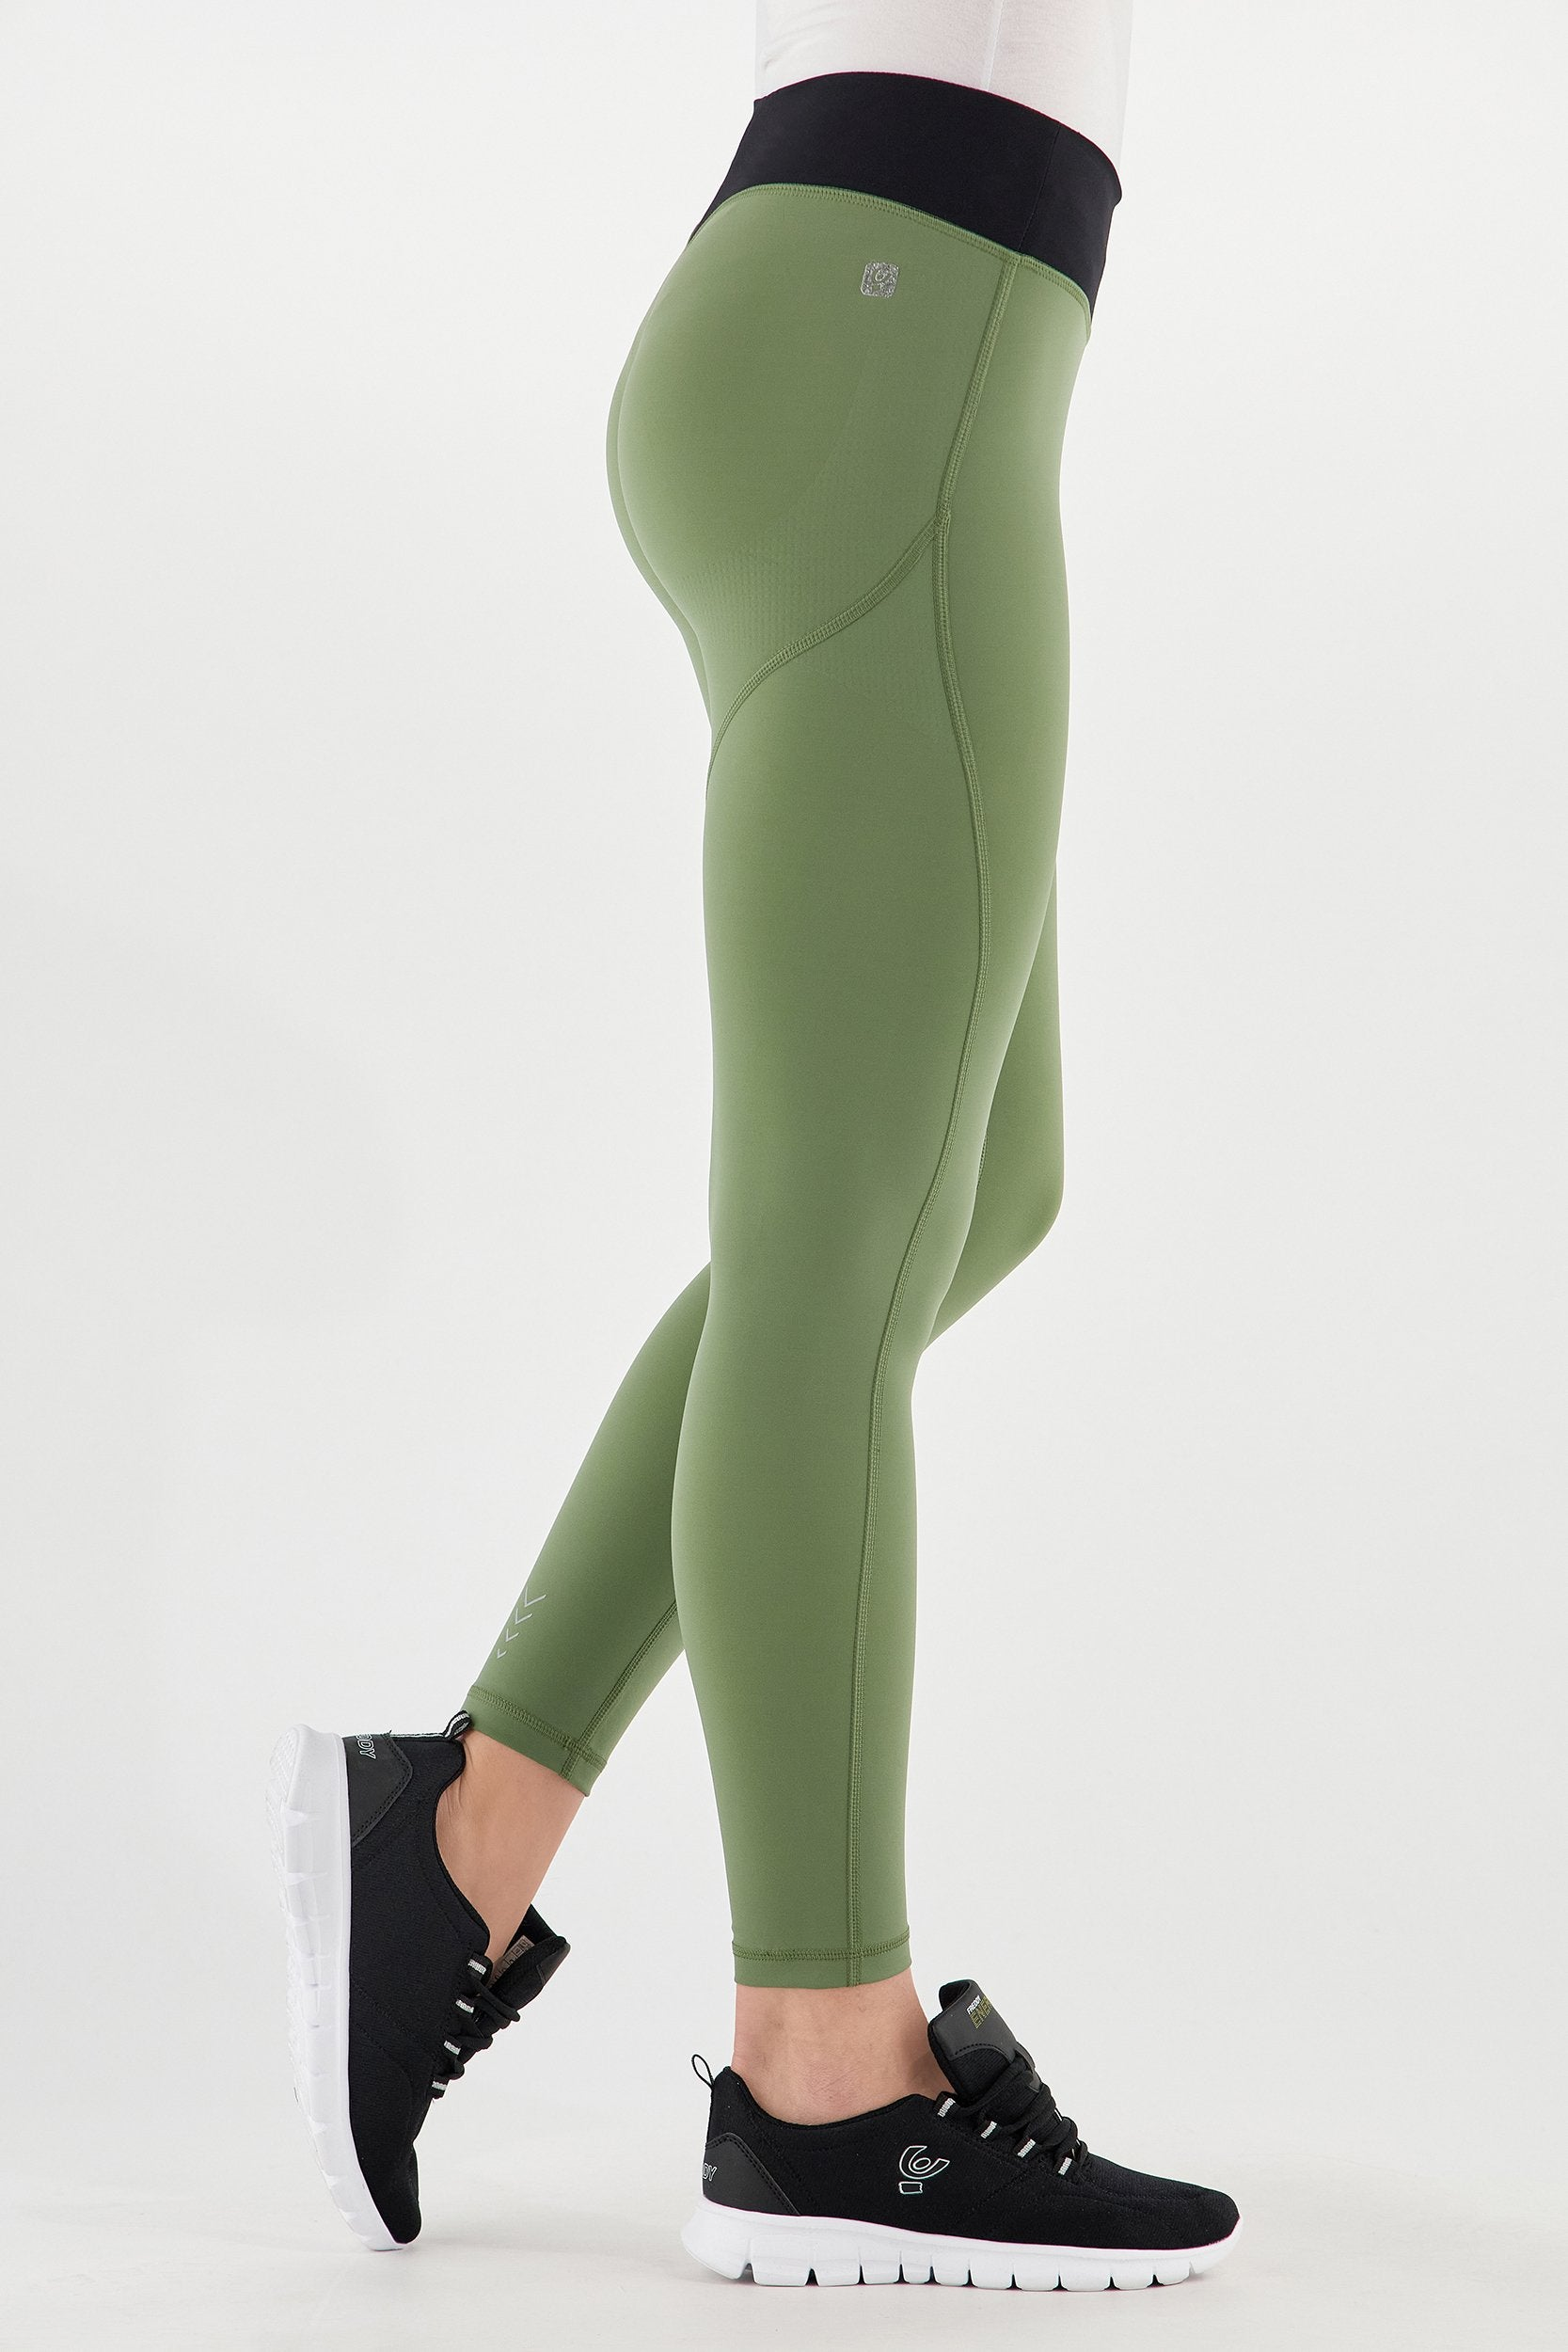 ANKLE LEG ARMY GREEN FITNESS LEGGINGS